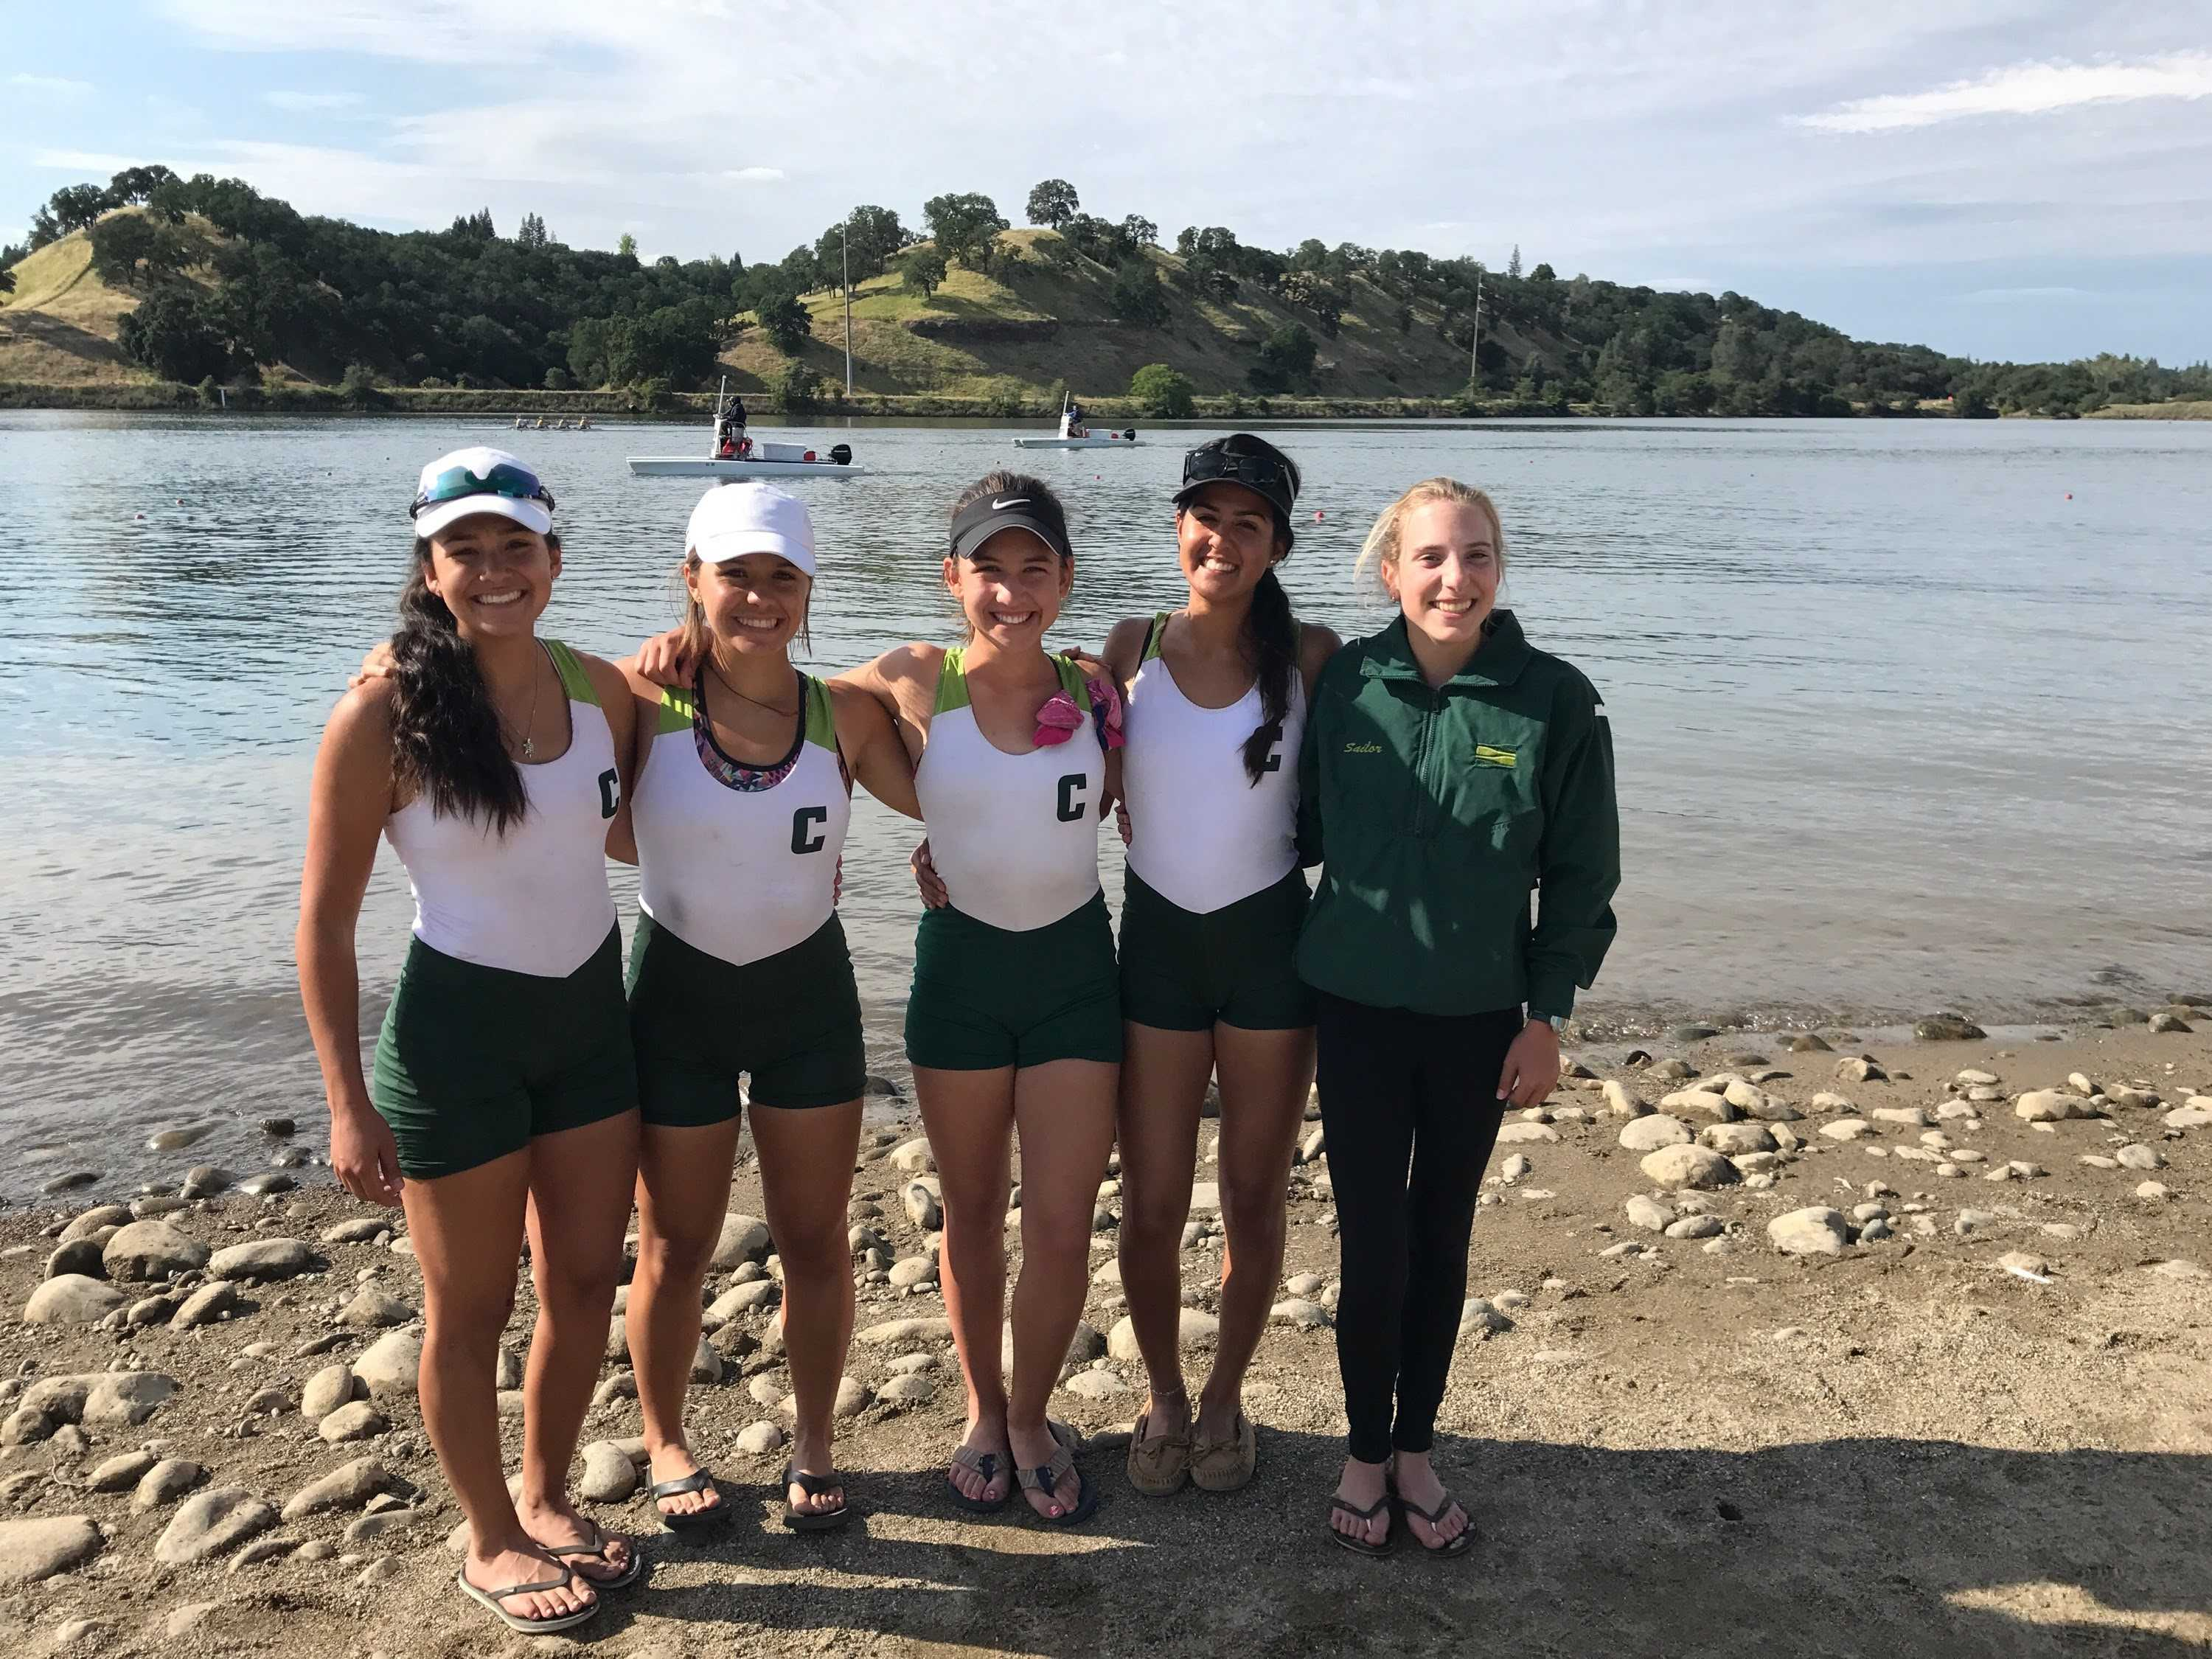 Mia Monsour '21 smiles with her teammates after a race. Credit: Dani Thole